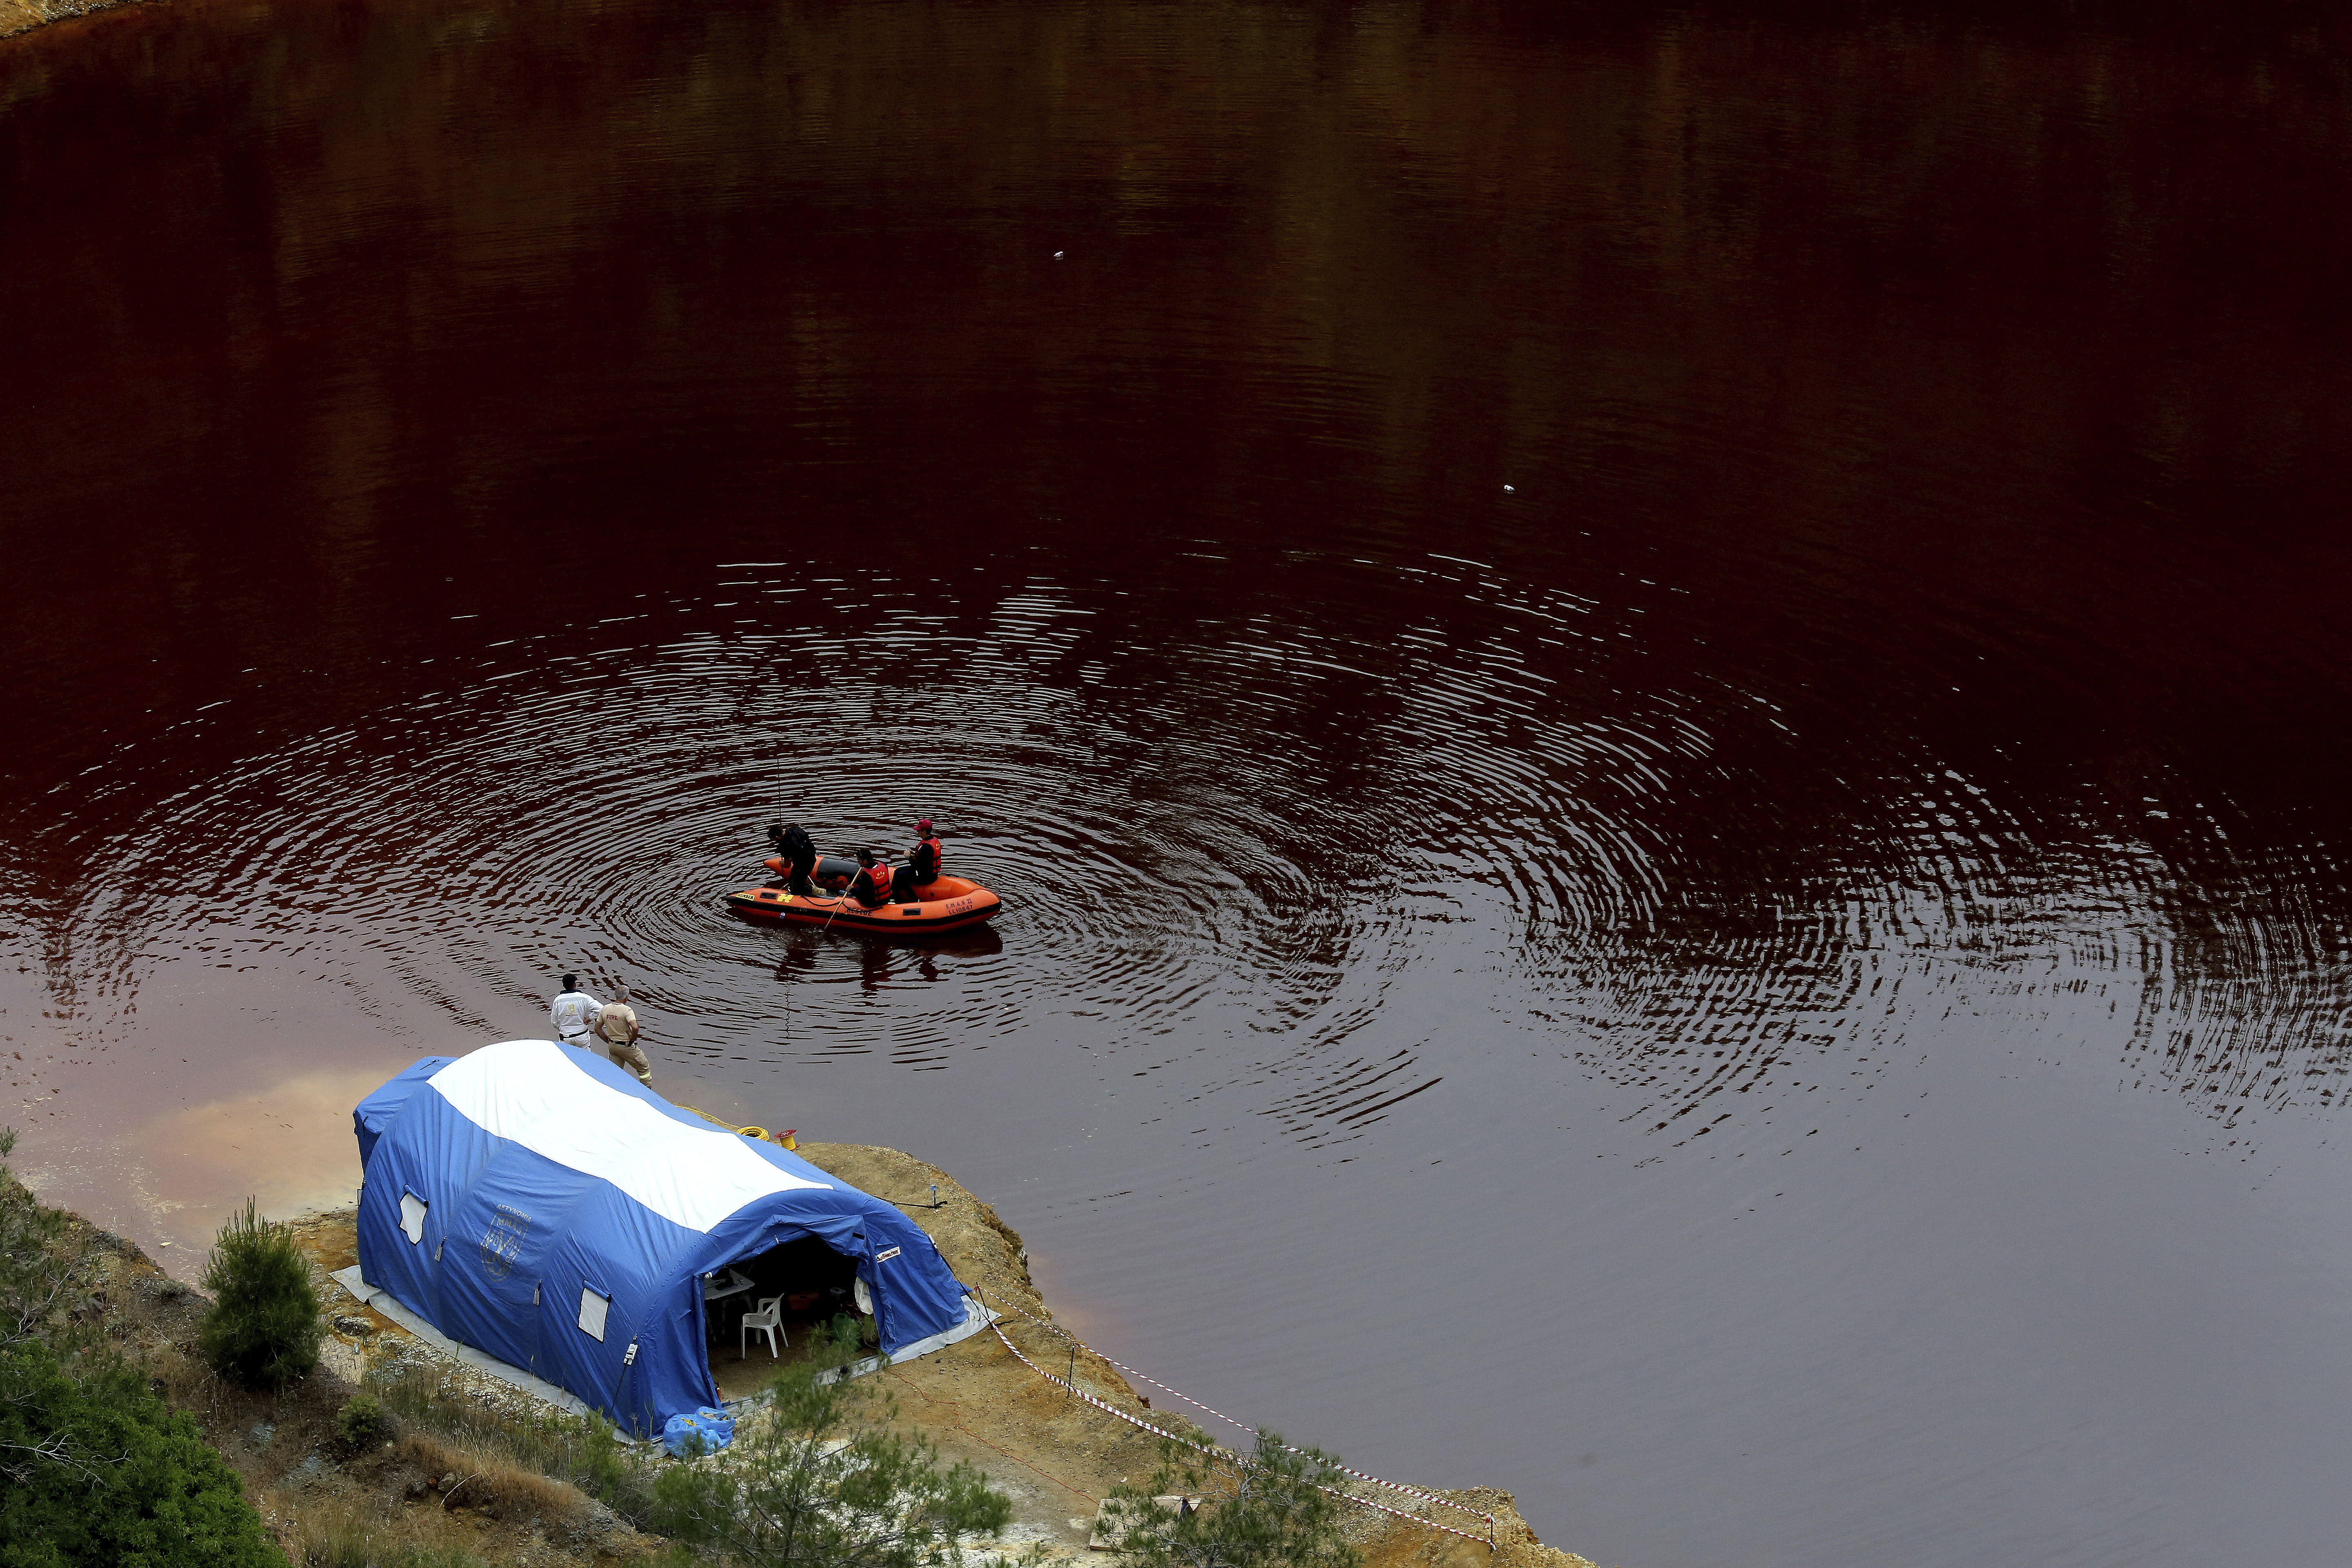 Members of the Cyprus Special Disaster Response Unit search for suitcases in a man-made lake, near the village of Mitsero outside of the capital Nicosia, Cyprus, Wednesday, May 1, 2019. Cyprus police spokesman Andreas Angelides says British experts called in to assist in the east Mediterranean island nation's serial killer case have been brought up to speed on the ongoing probe. (AP Photo/Petros Karadjias)